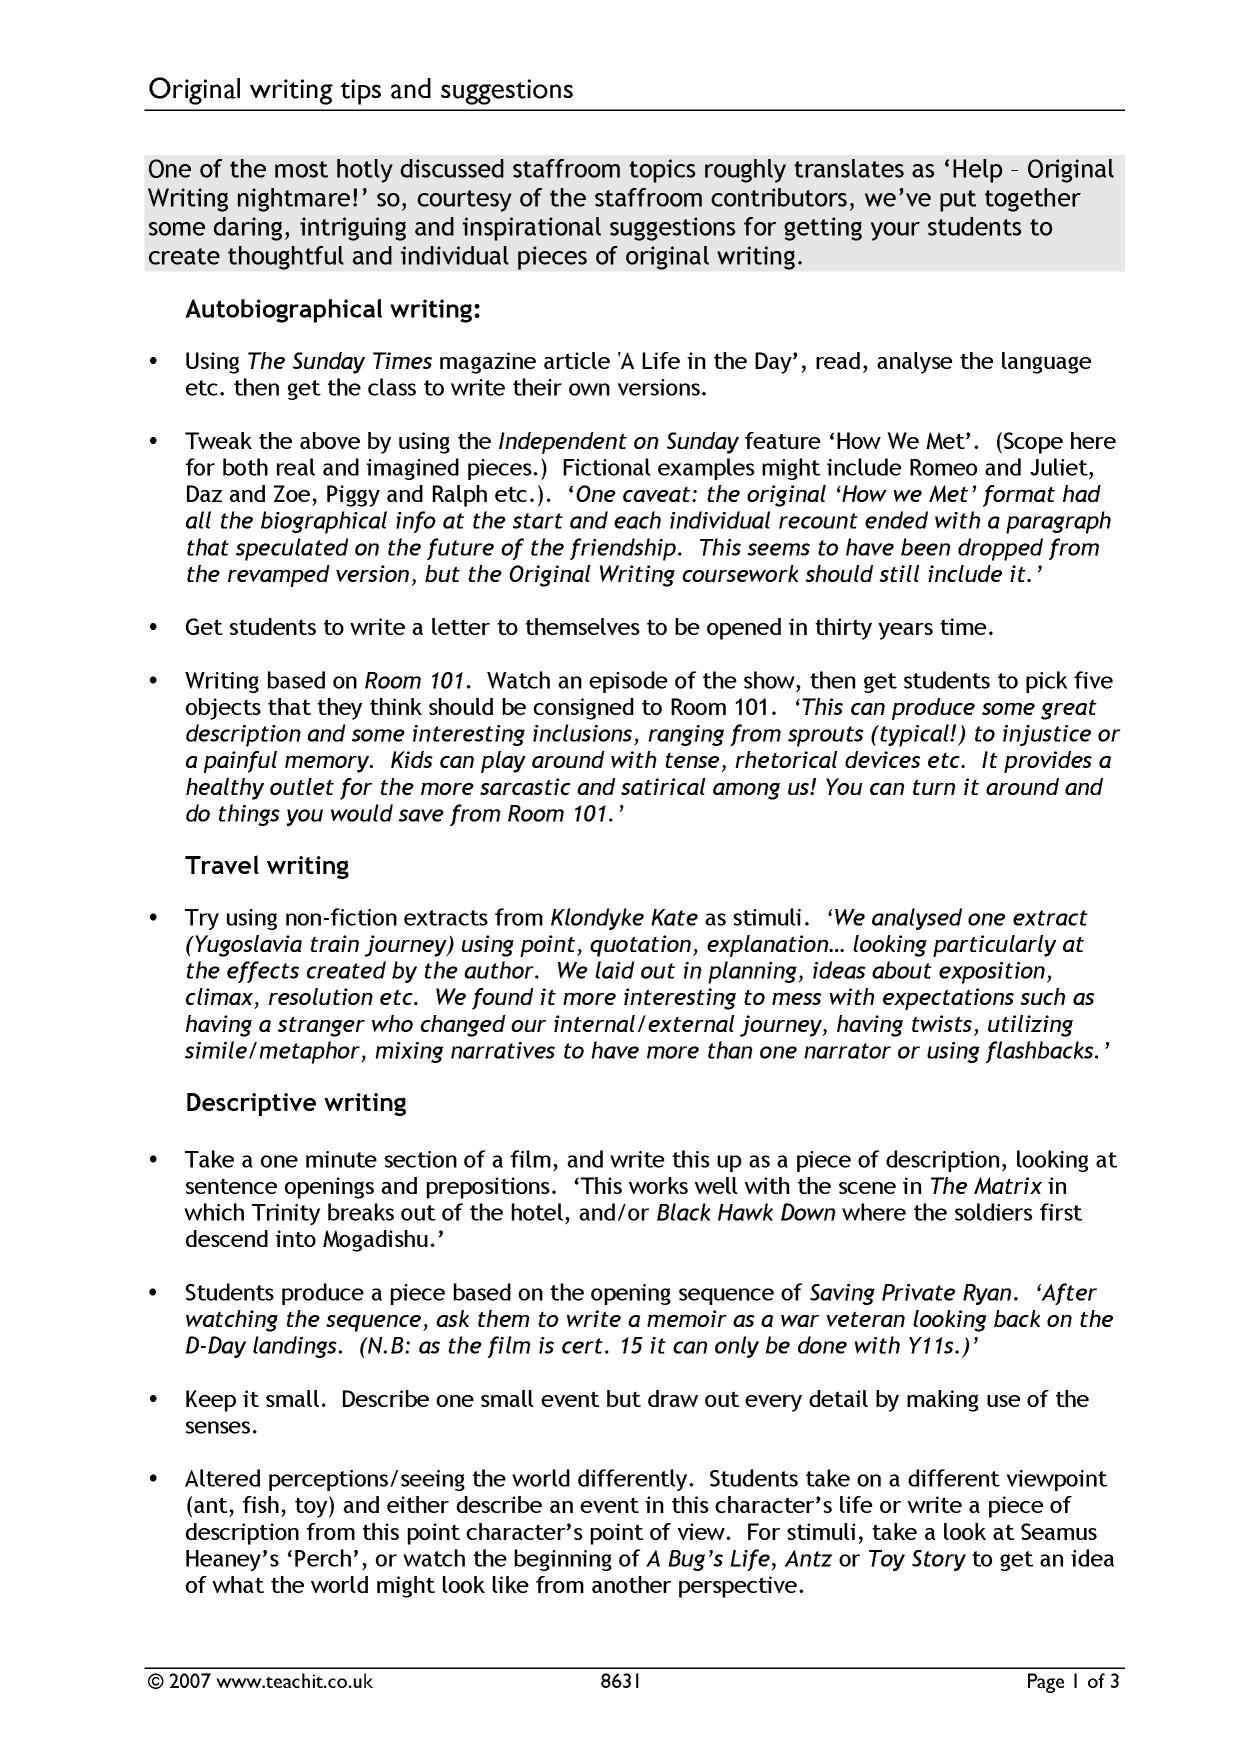 original writing coursework ks4 Gcse coursework writing it is no problem for our writers to complete any kind of coursework papers as gcse coursework, aqa coursework, igcse coursework, a1/a2 coursework, ks4.